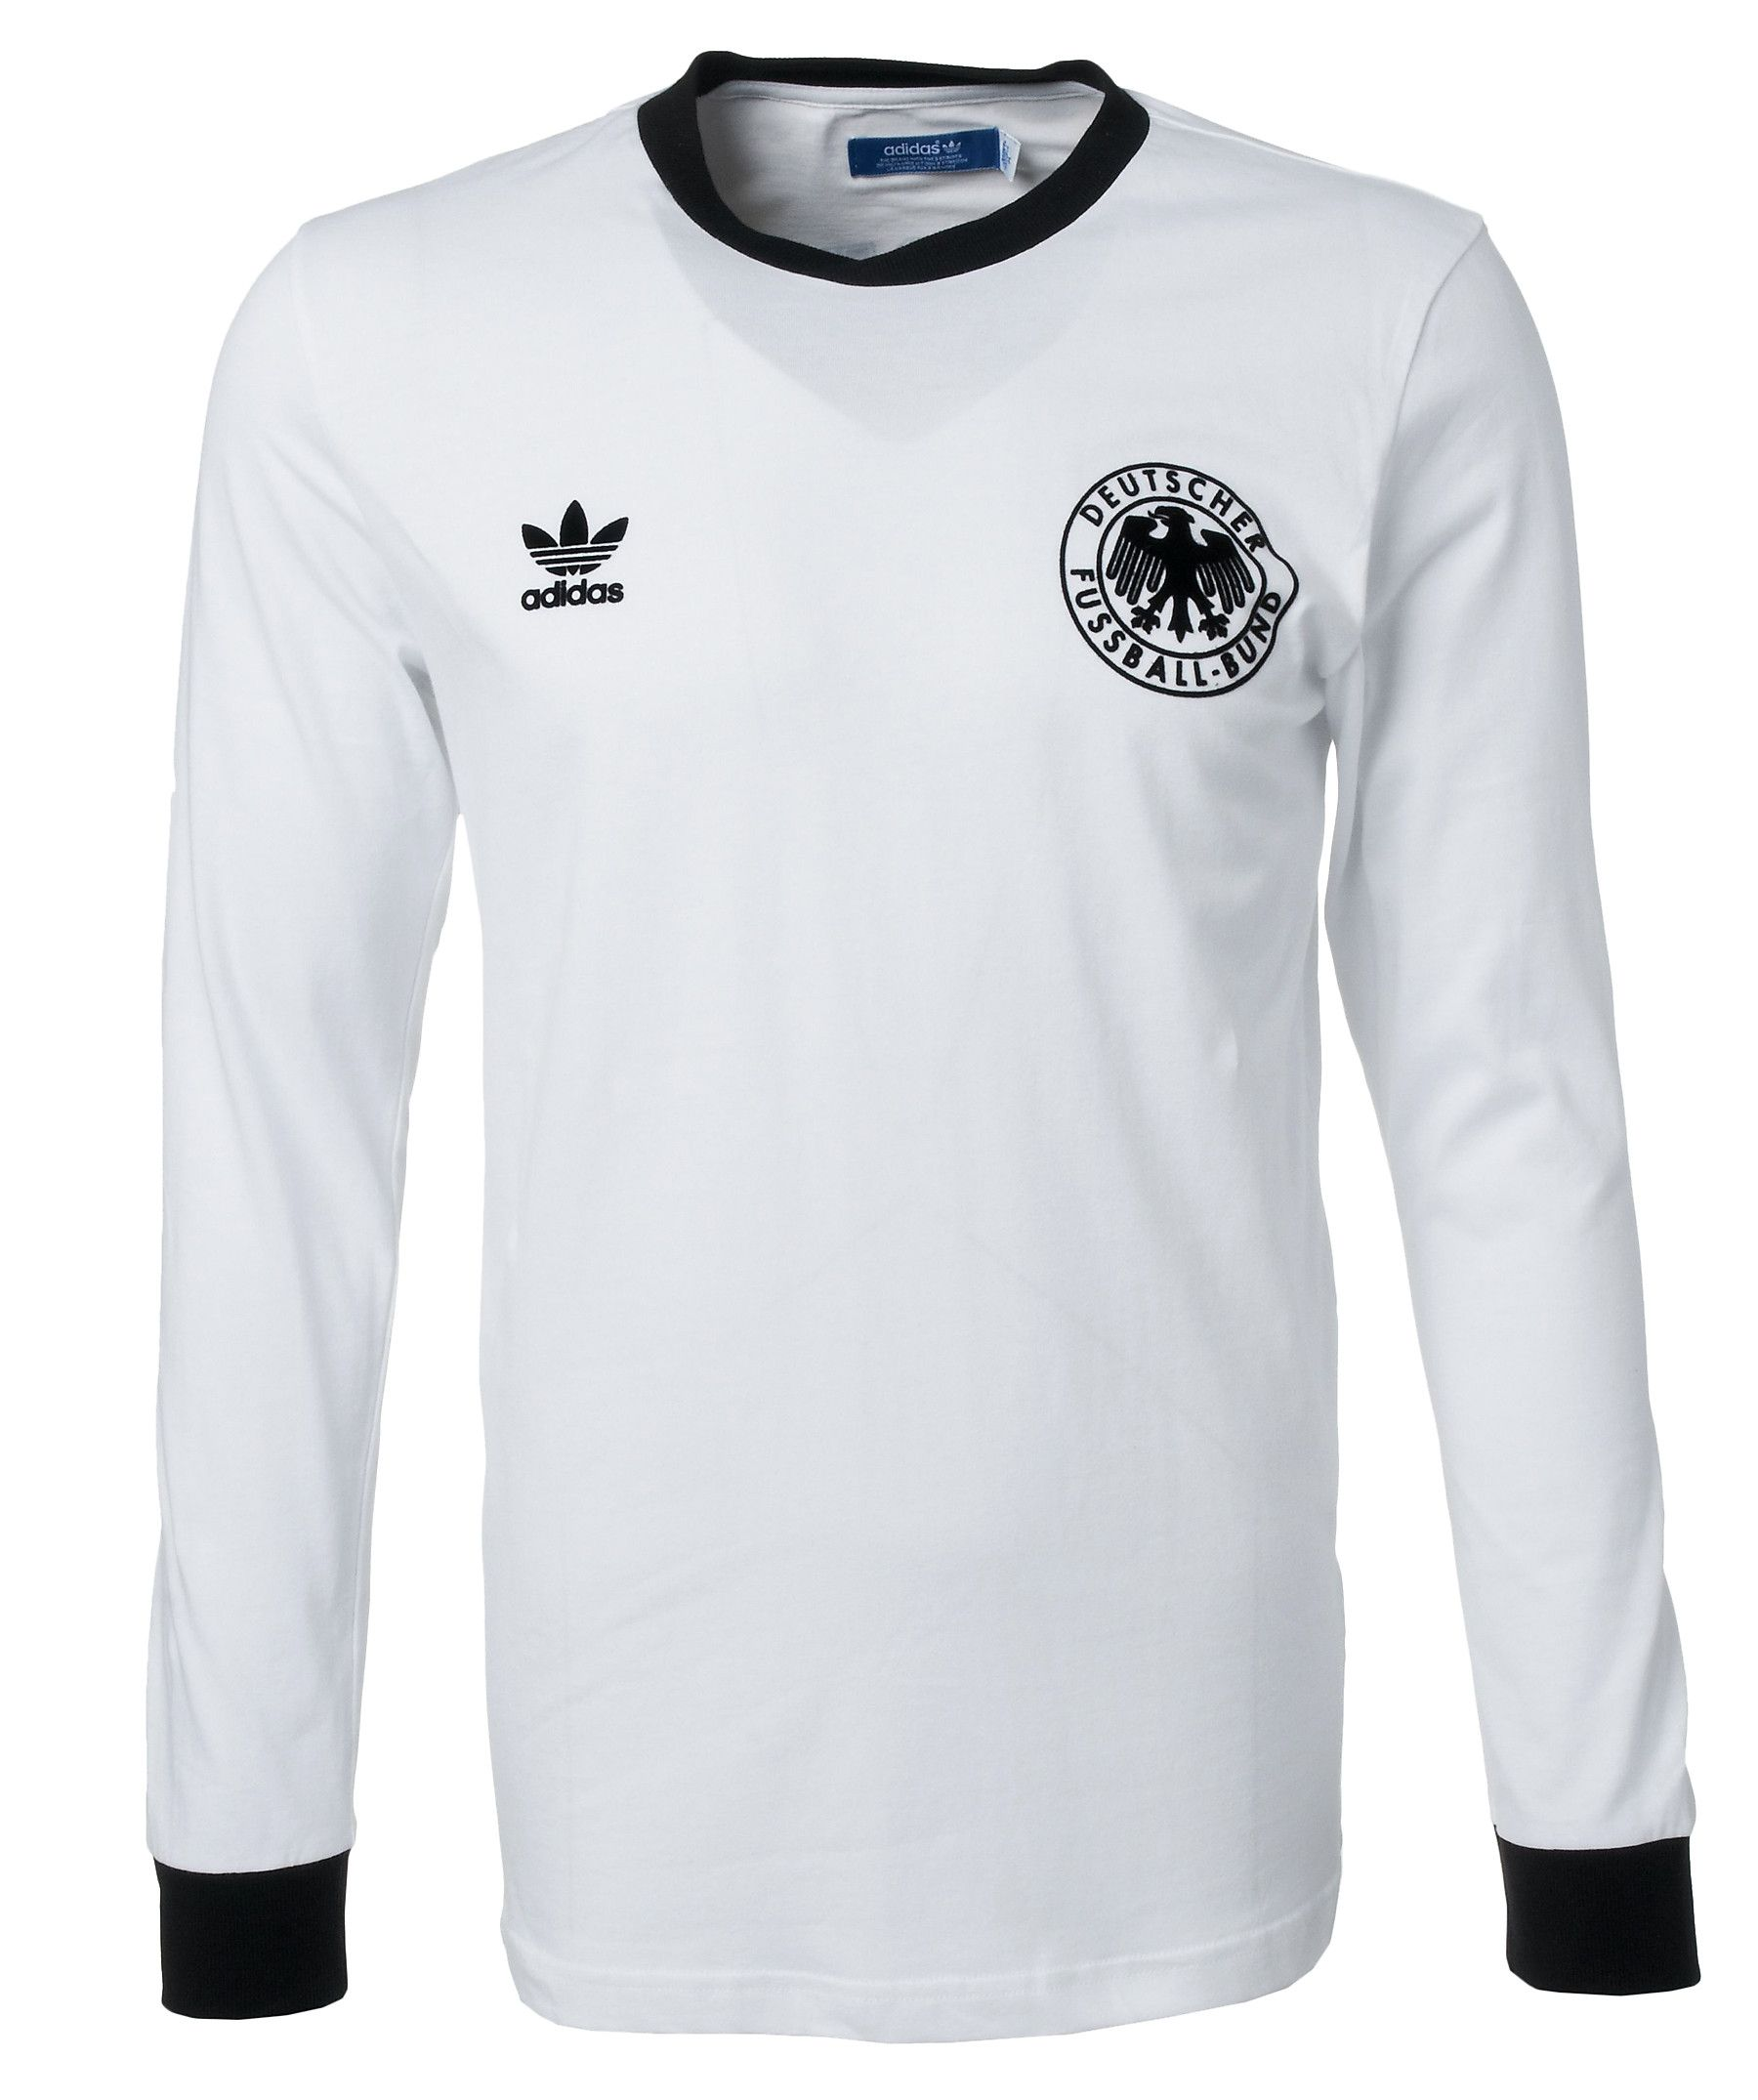 DFB Retro Longsleeve by adidas  soccer  training  game  cd390ef380b5c